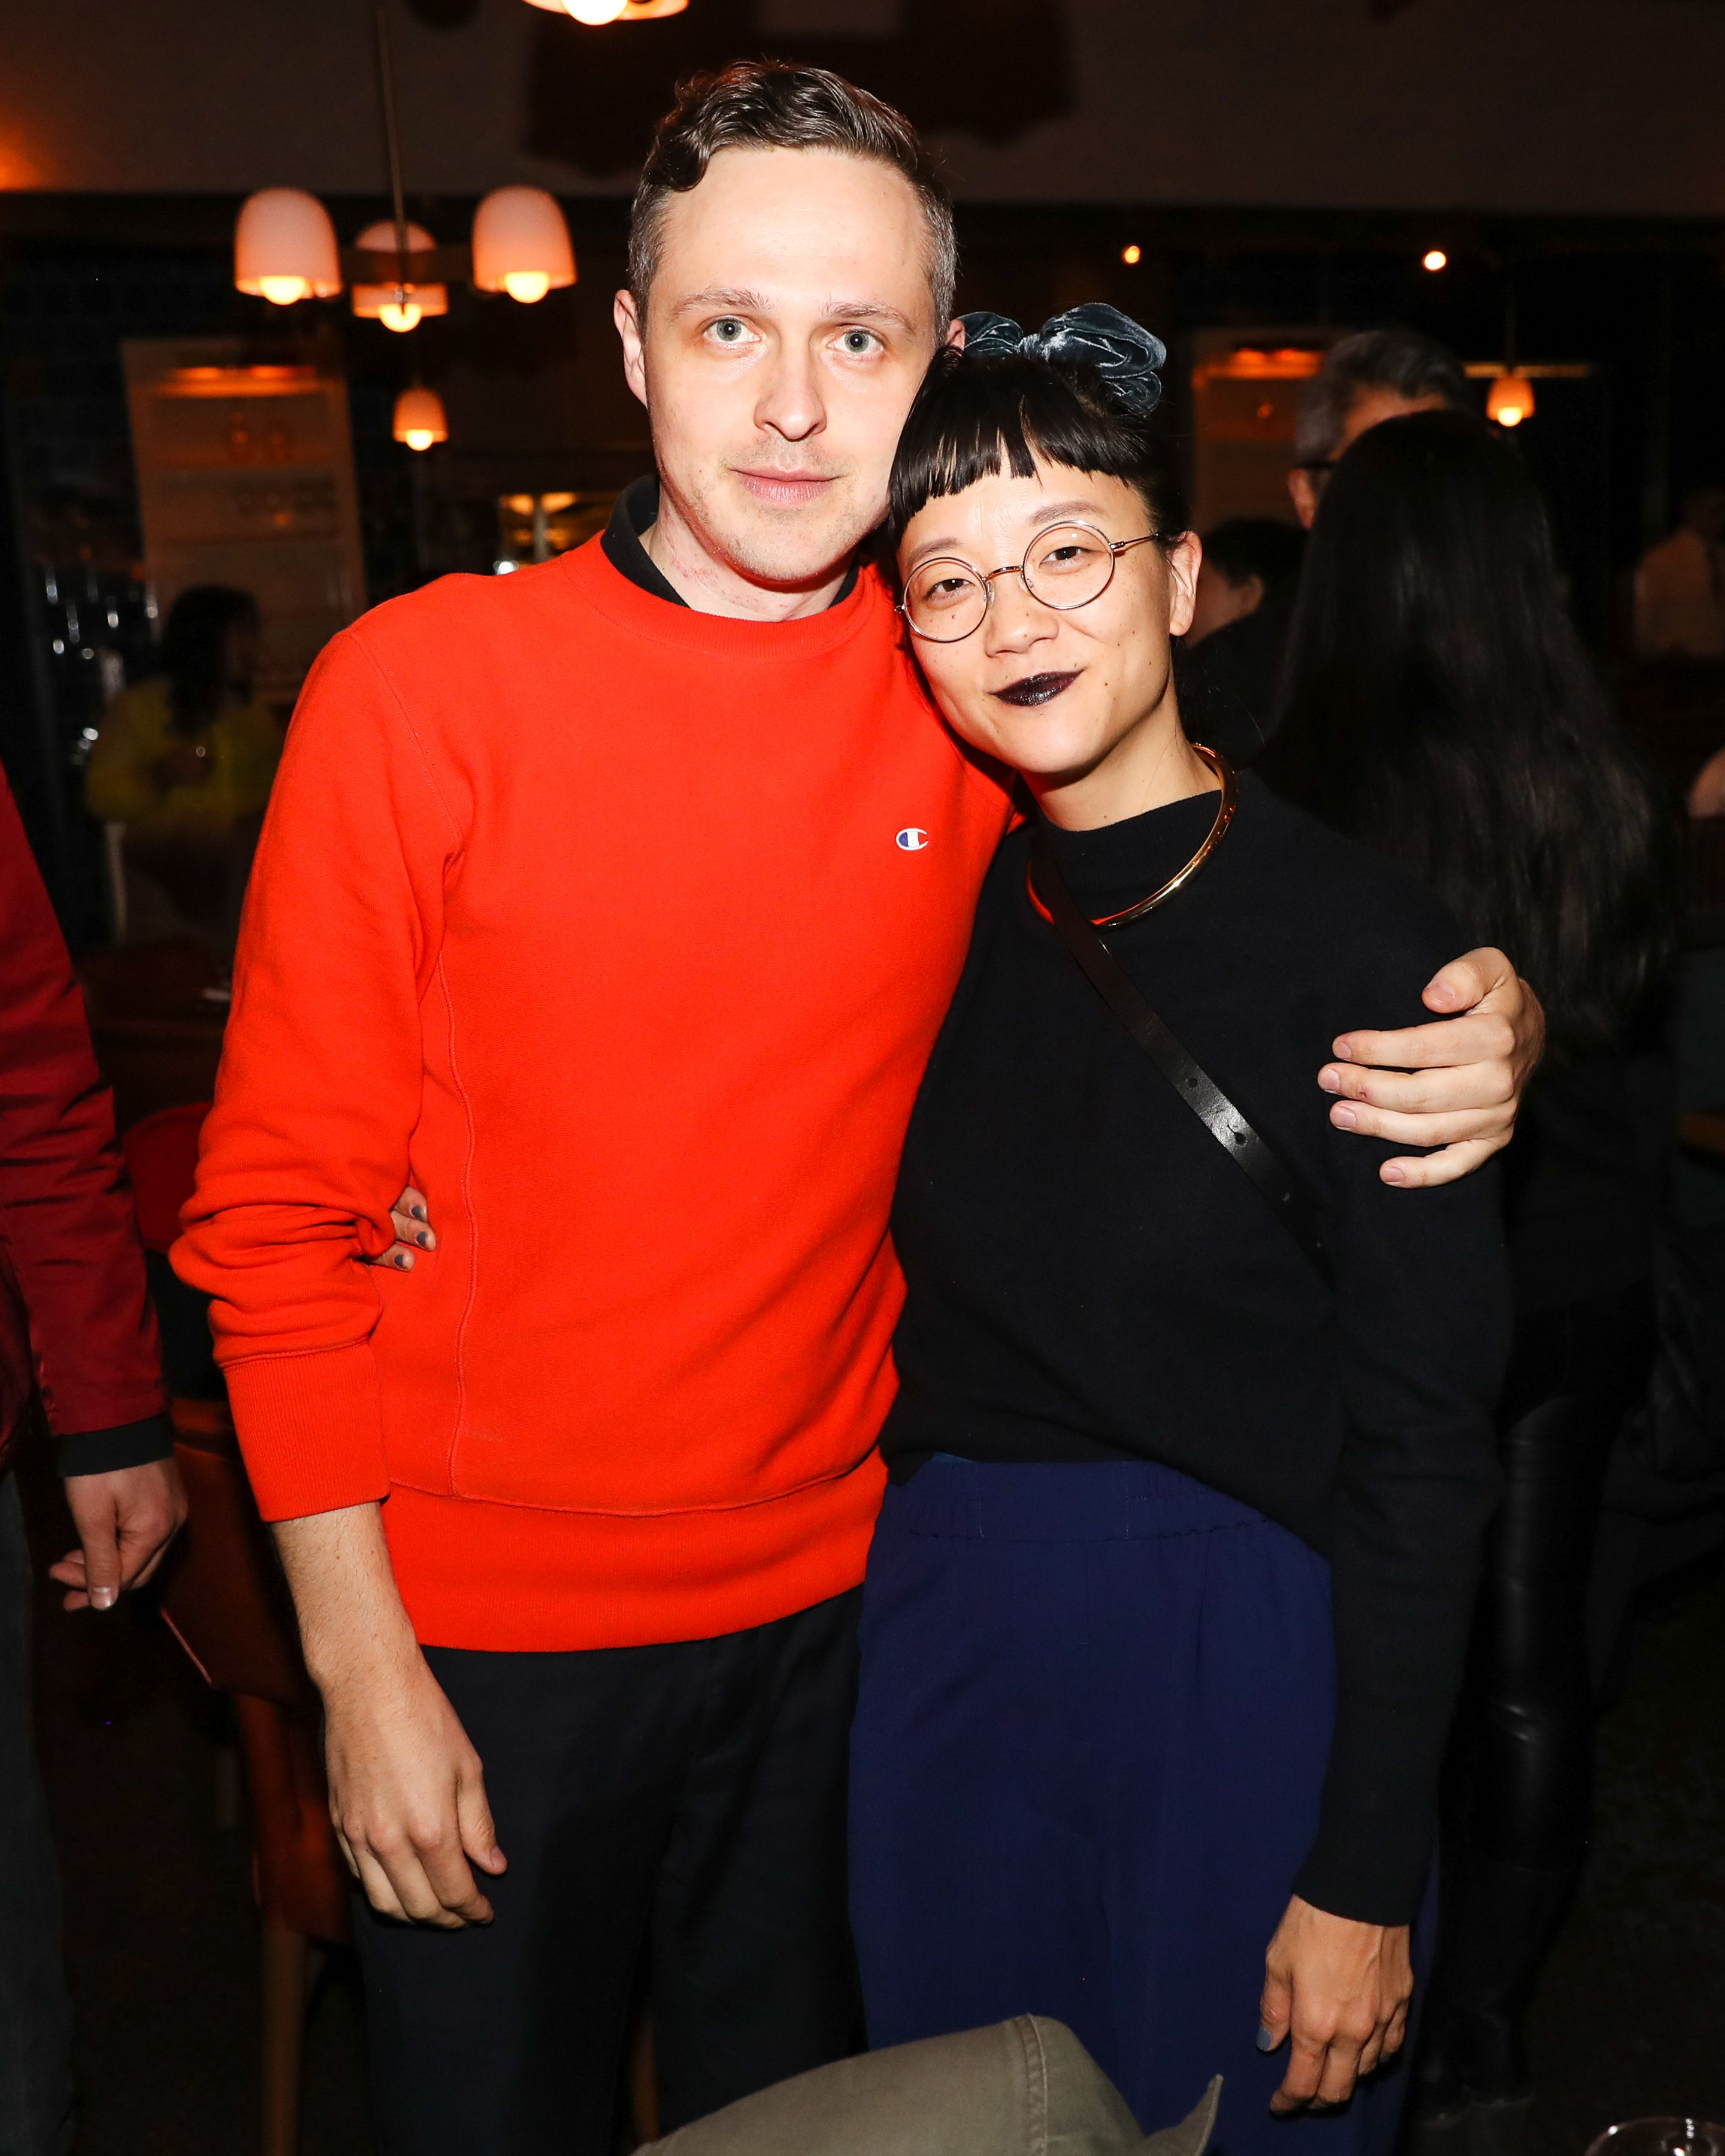 Thomas Mader and Christine Kim Thomas Mader and Christine Kim celebrate Korakrit Arunanondchai, boychild, and Alex Gvojic's inclusion in the 58th Venice Biennale and the 2019 Whitney Biennial with a dinner at The Standard New York on May 13.